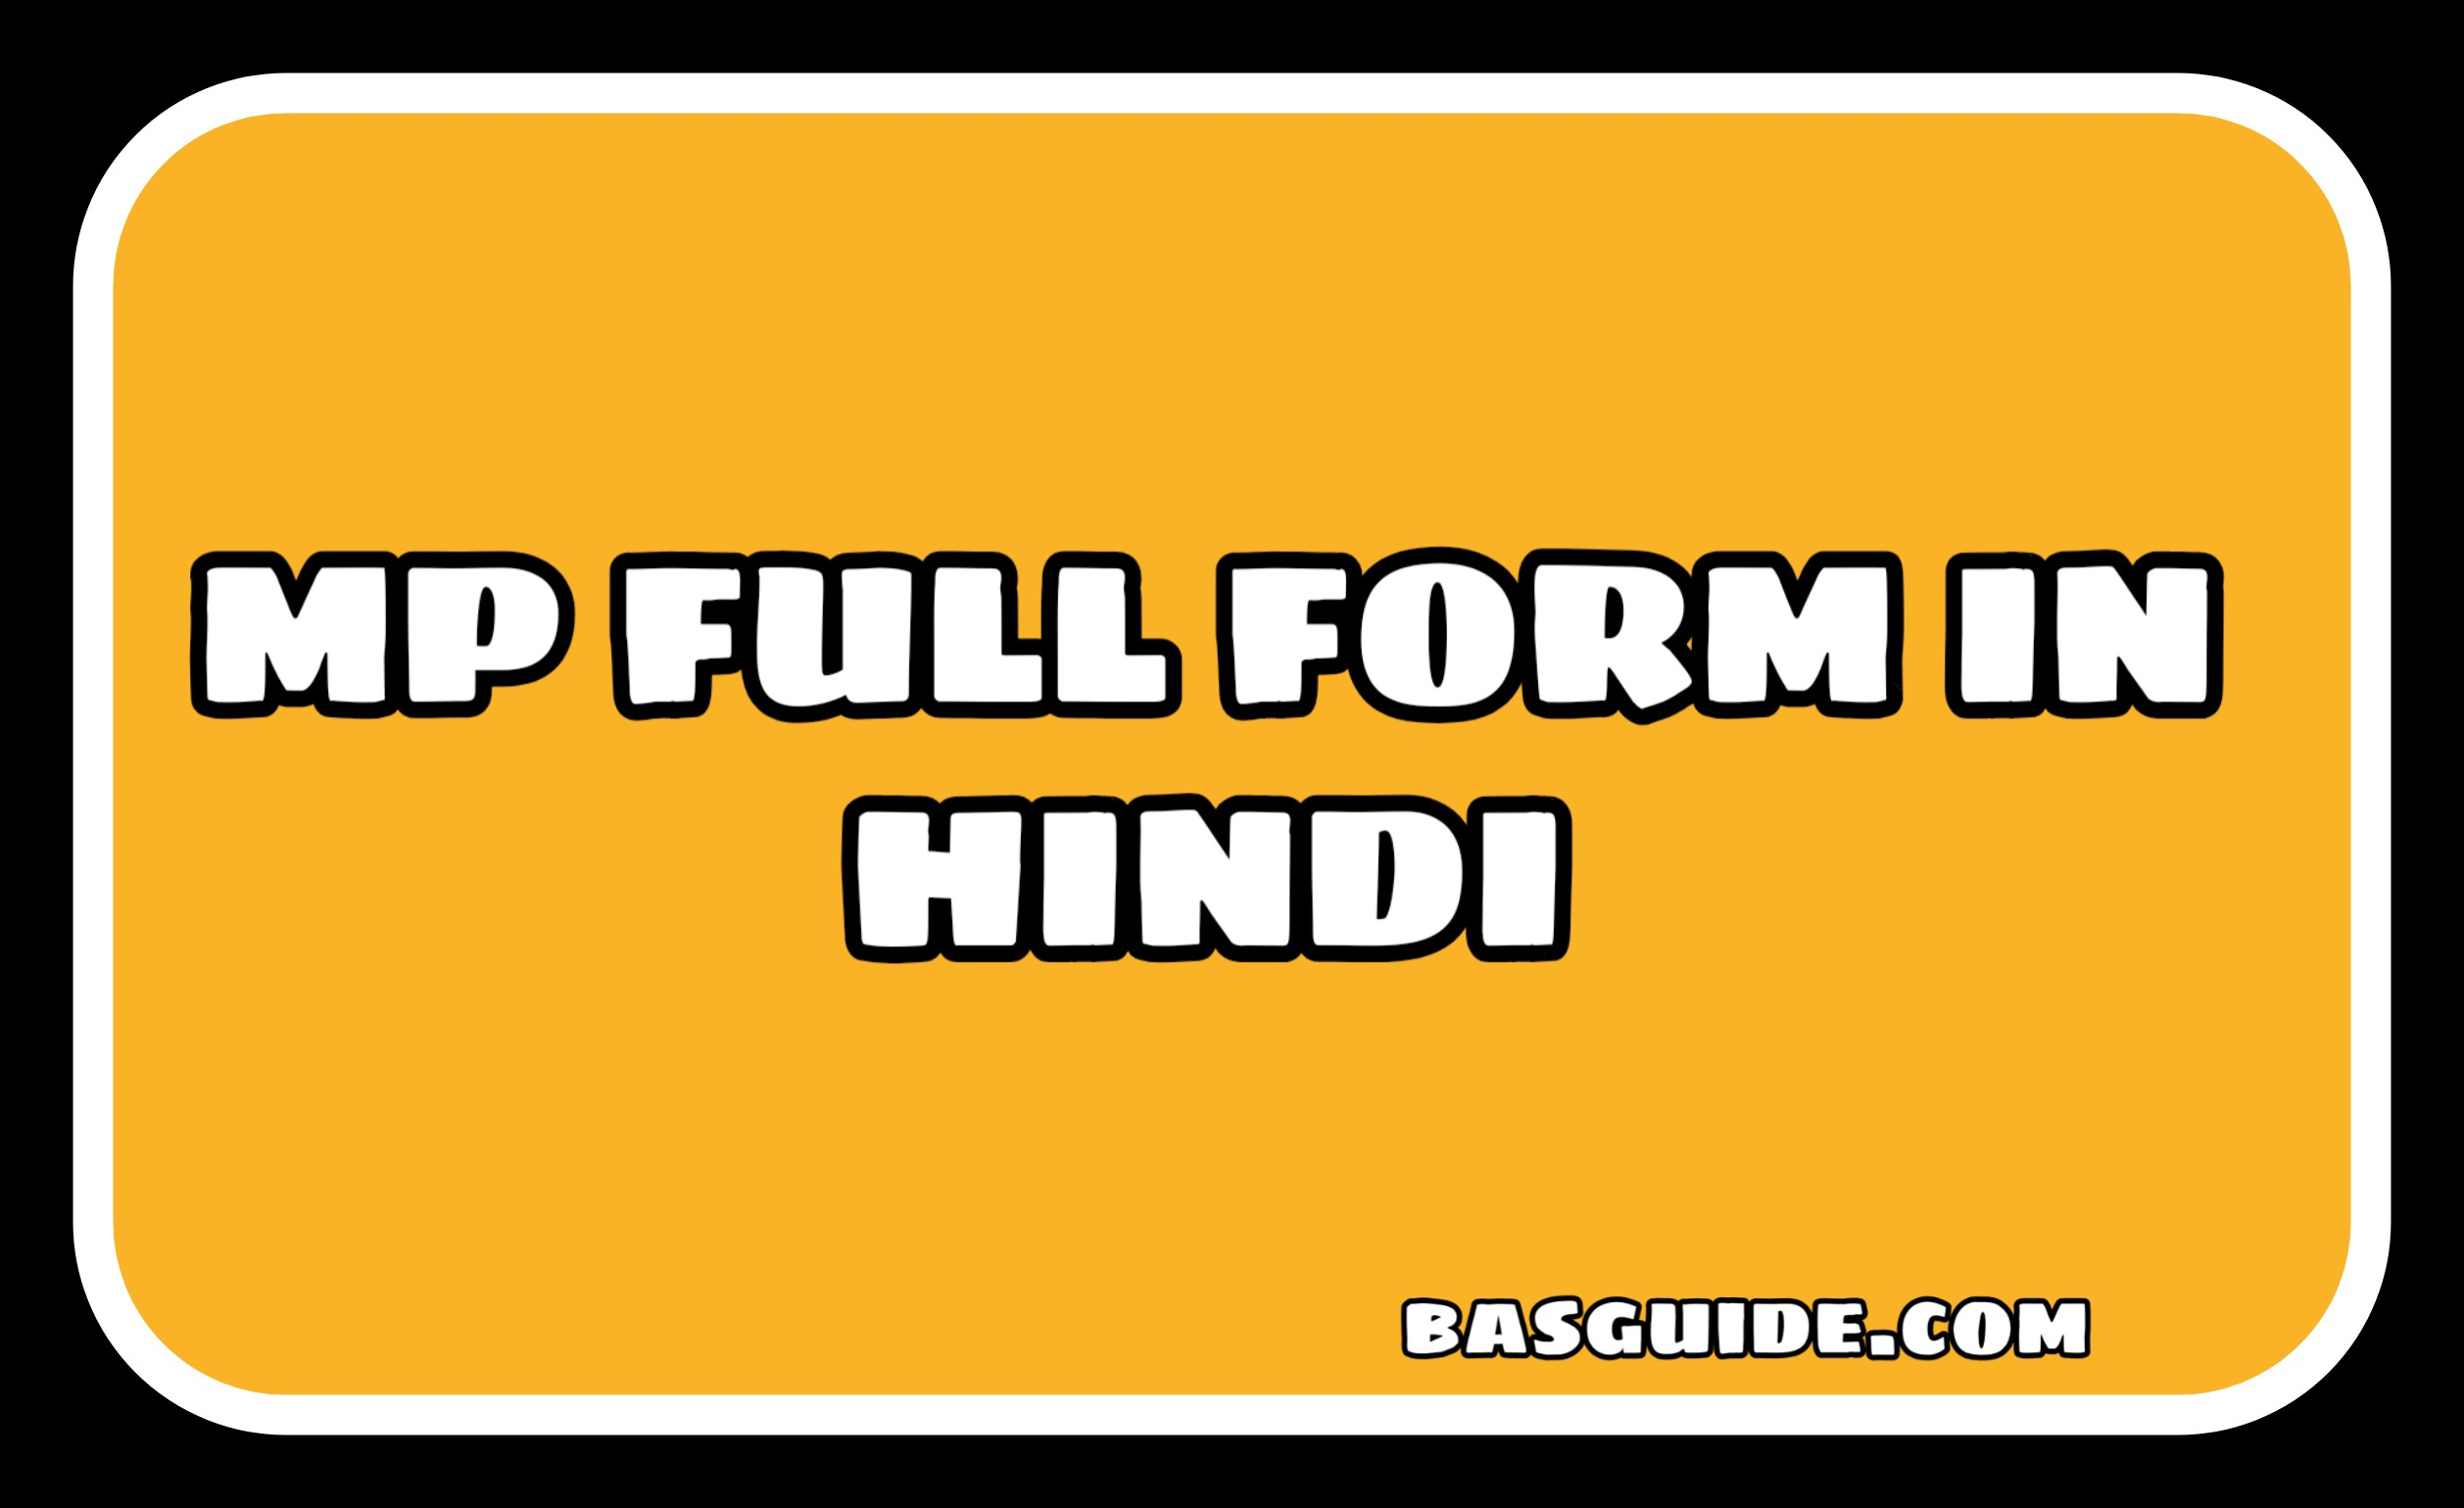 MP FULL FORM IN HINDI